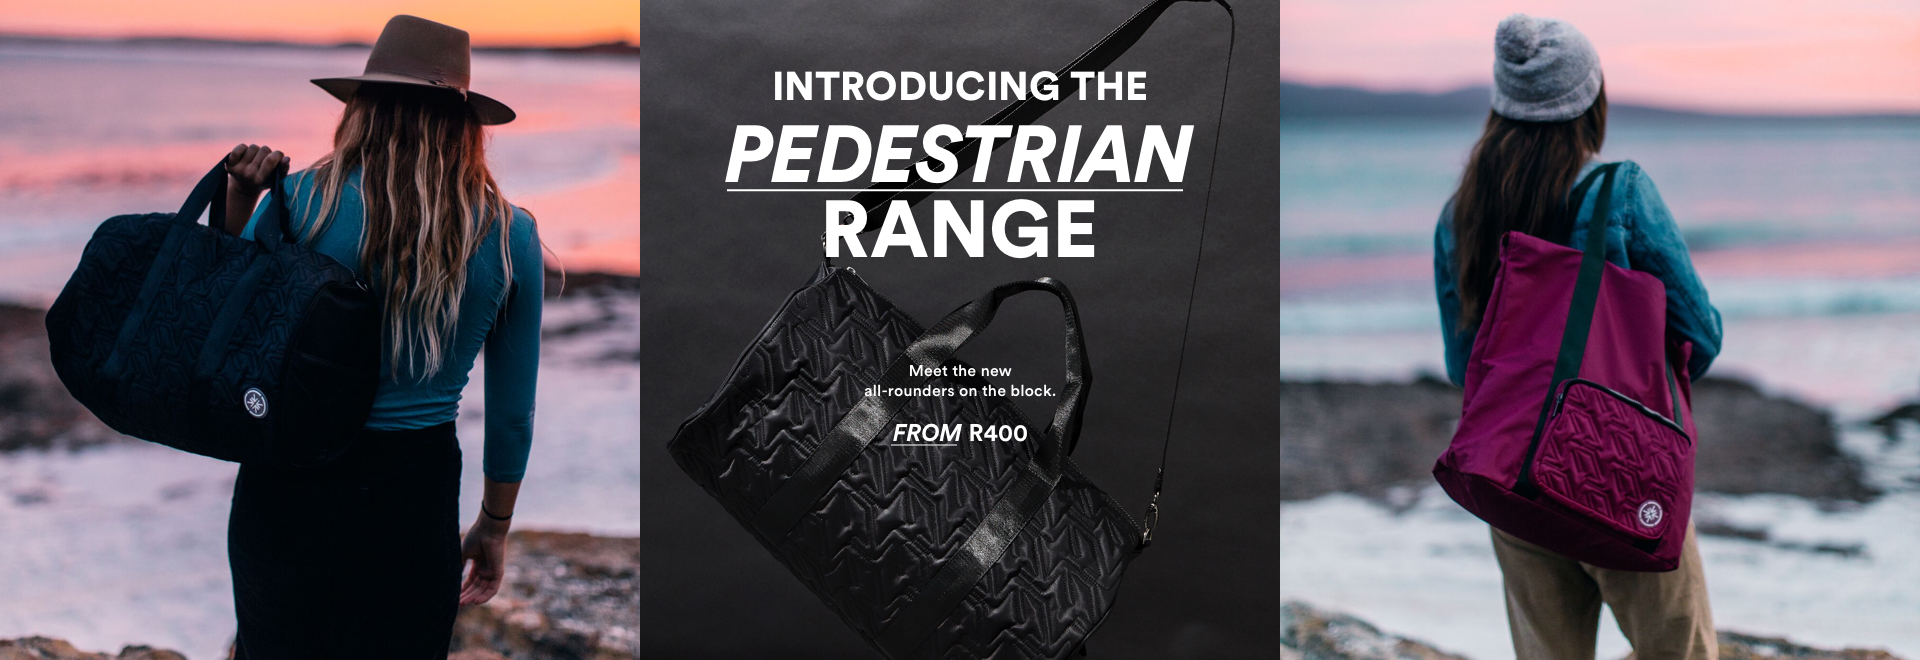 Introducing the Pedestrian Range. Meet the new all-rounders on the block. From R400. Click to shop.